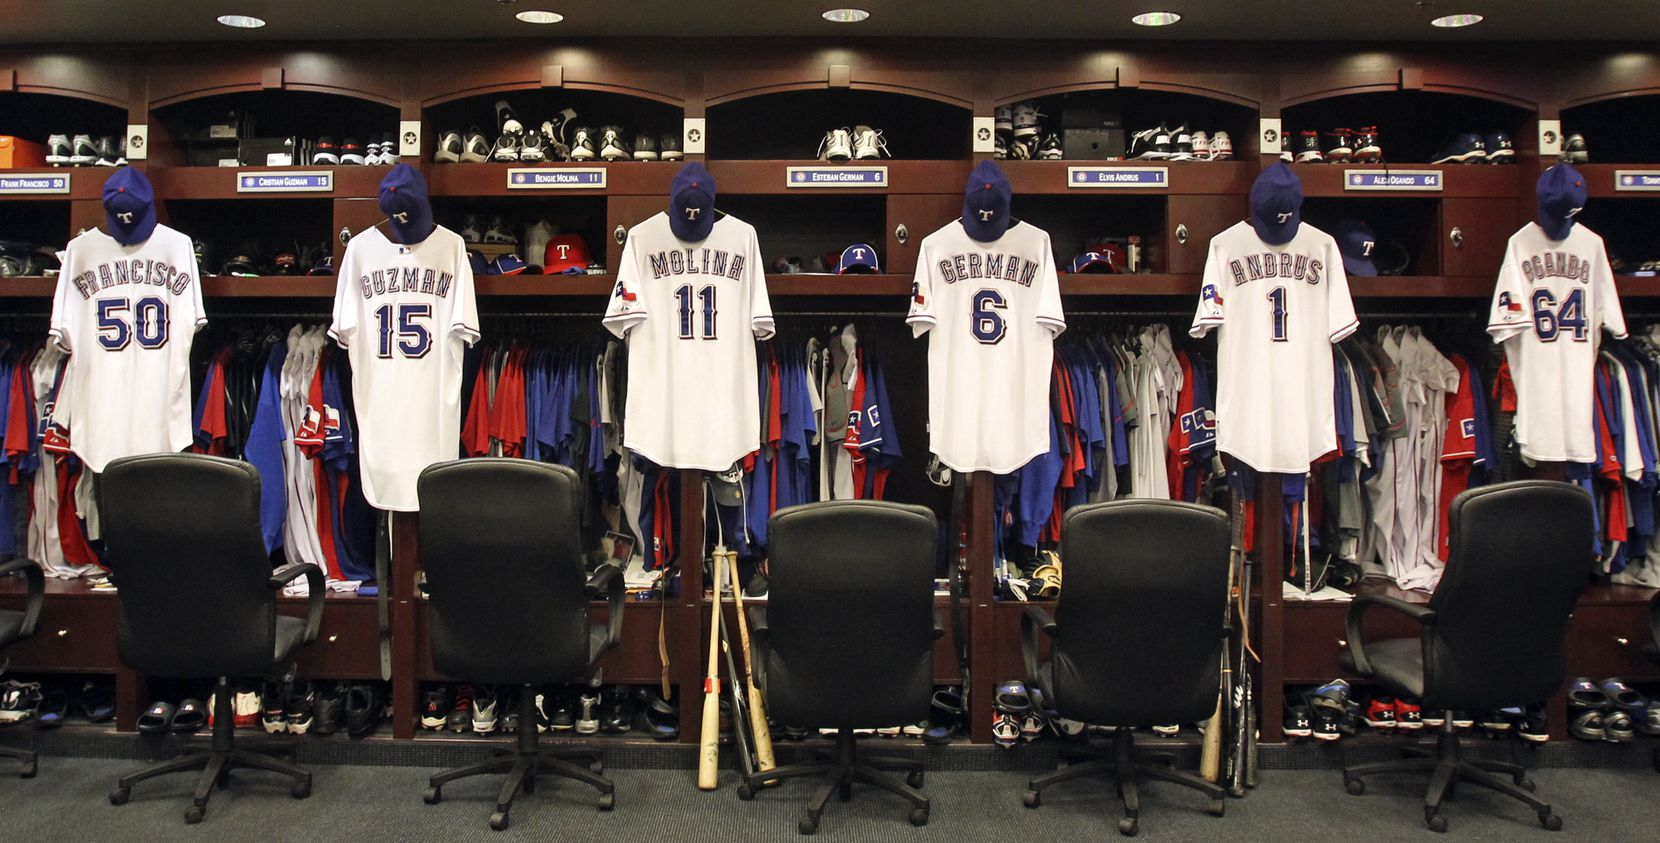 The odds of making it into the Texas Rangers locker room as a player aren't great, so maybe just take a tour of Globe Life Park.